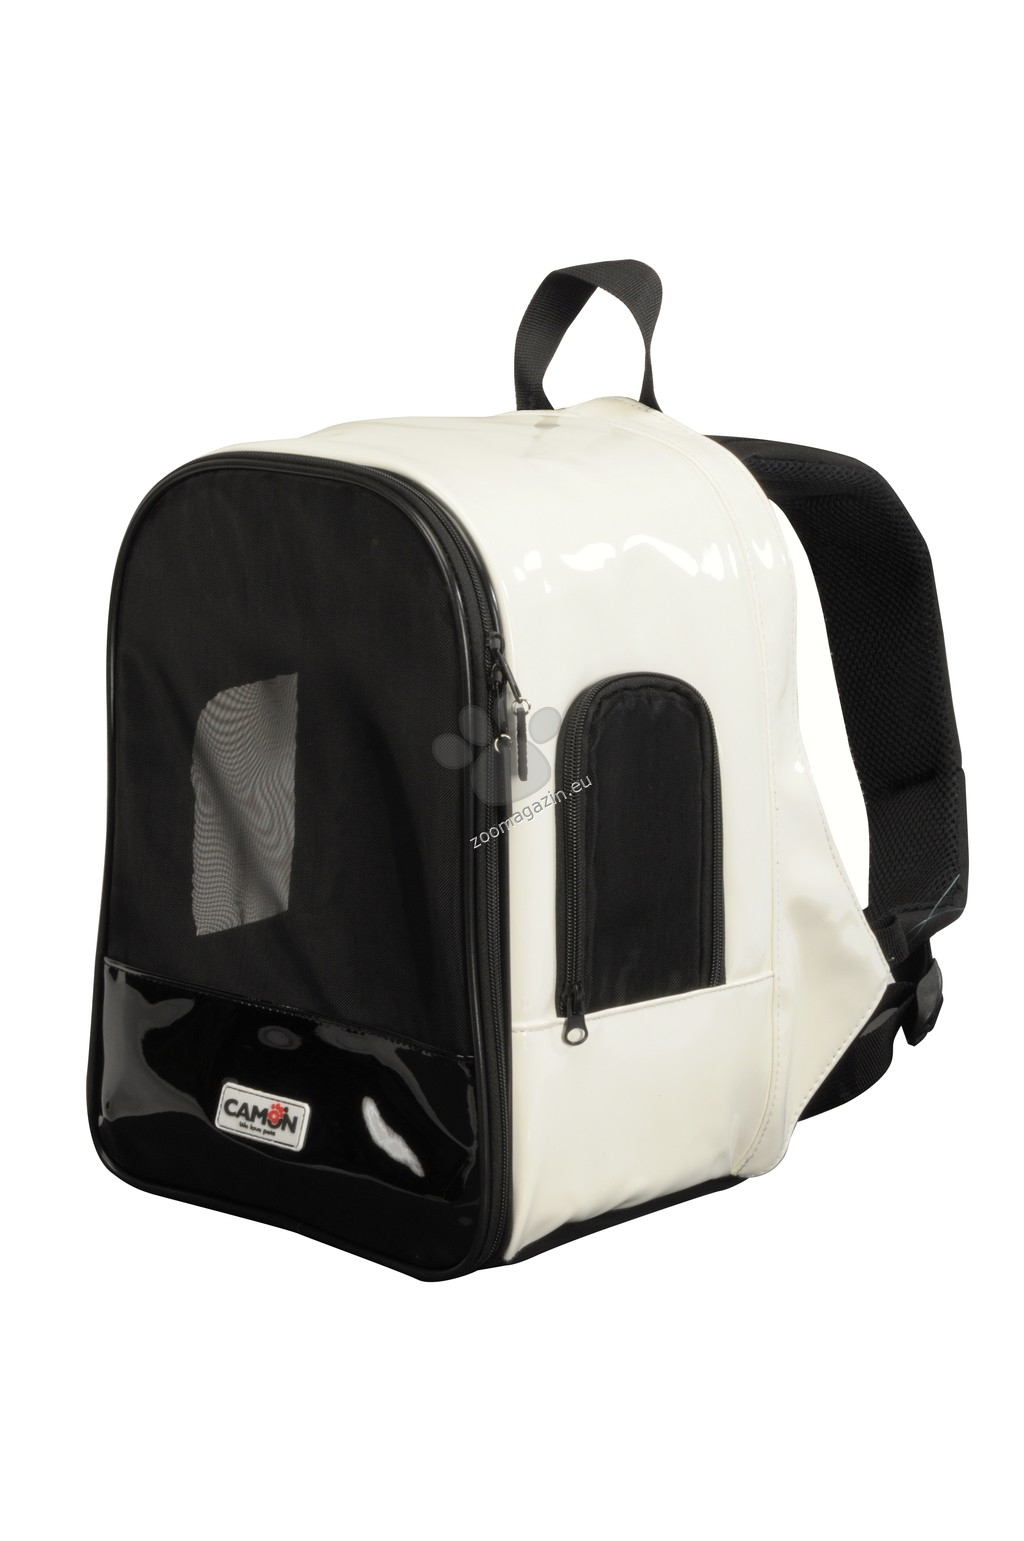 Camon Backpack carrier with breathable mesh - раница 25 / 16 / 35 см. / бяла, черна /